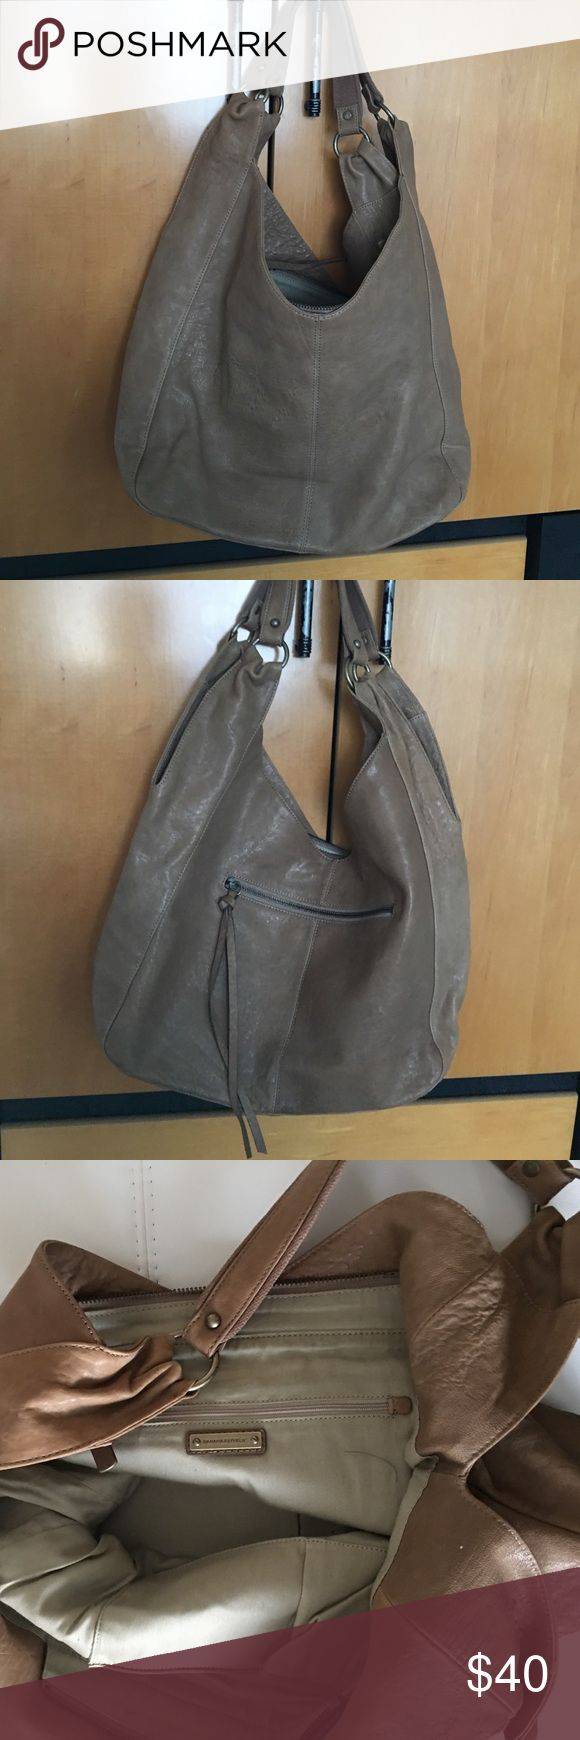 Banana republic purse Banana republic purse . One compartment . 2 zip up pockets , lots of room. Now used, clean inside Banana Republic Bags Shoulder Bags